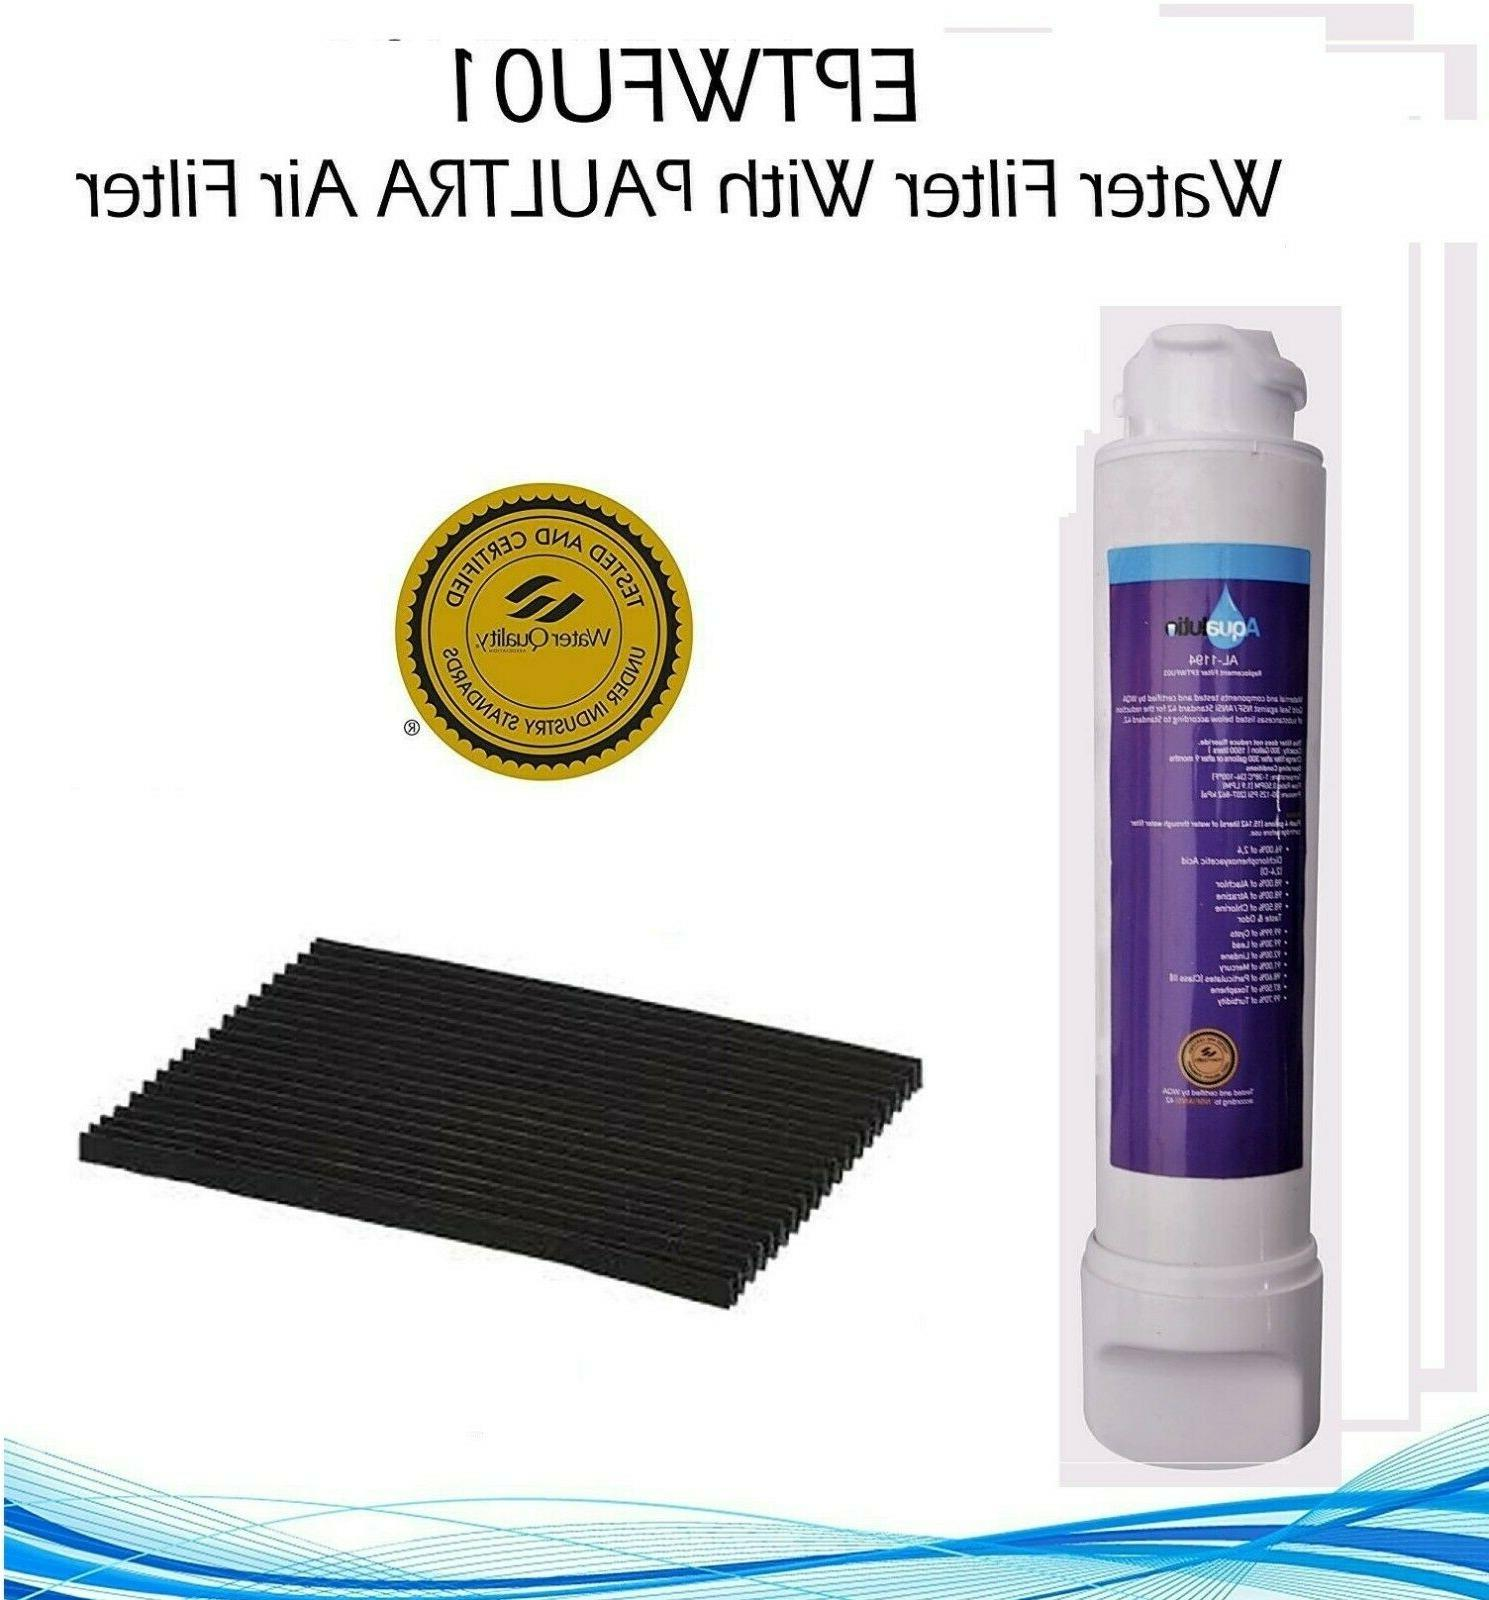 EPTWFU01 Water Filter with Free Air Filter Refrigerator